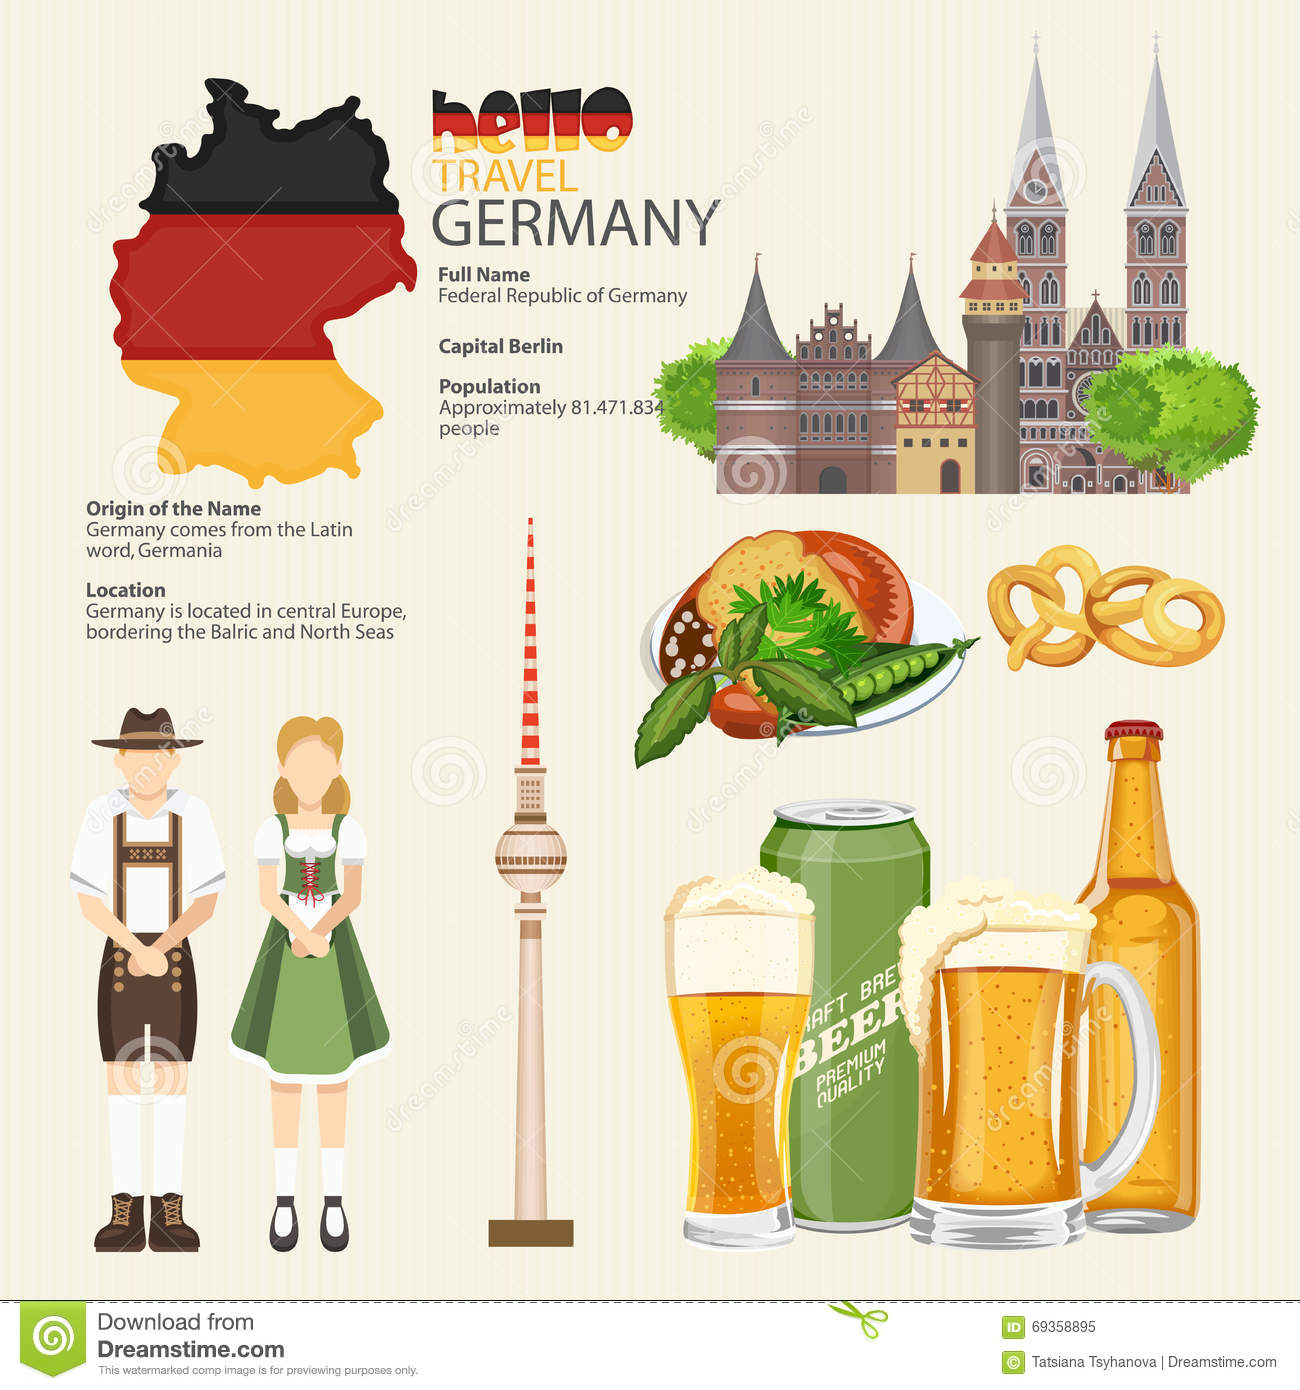 I Want To Visit Germany In German: Germany Travel Poster. Infographic. Trip Architecture